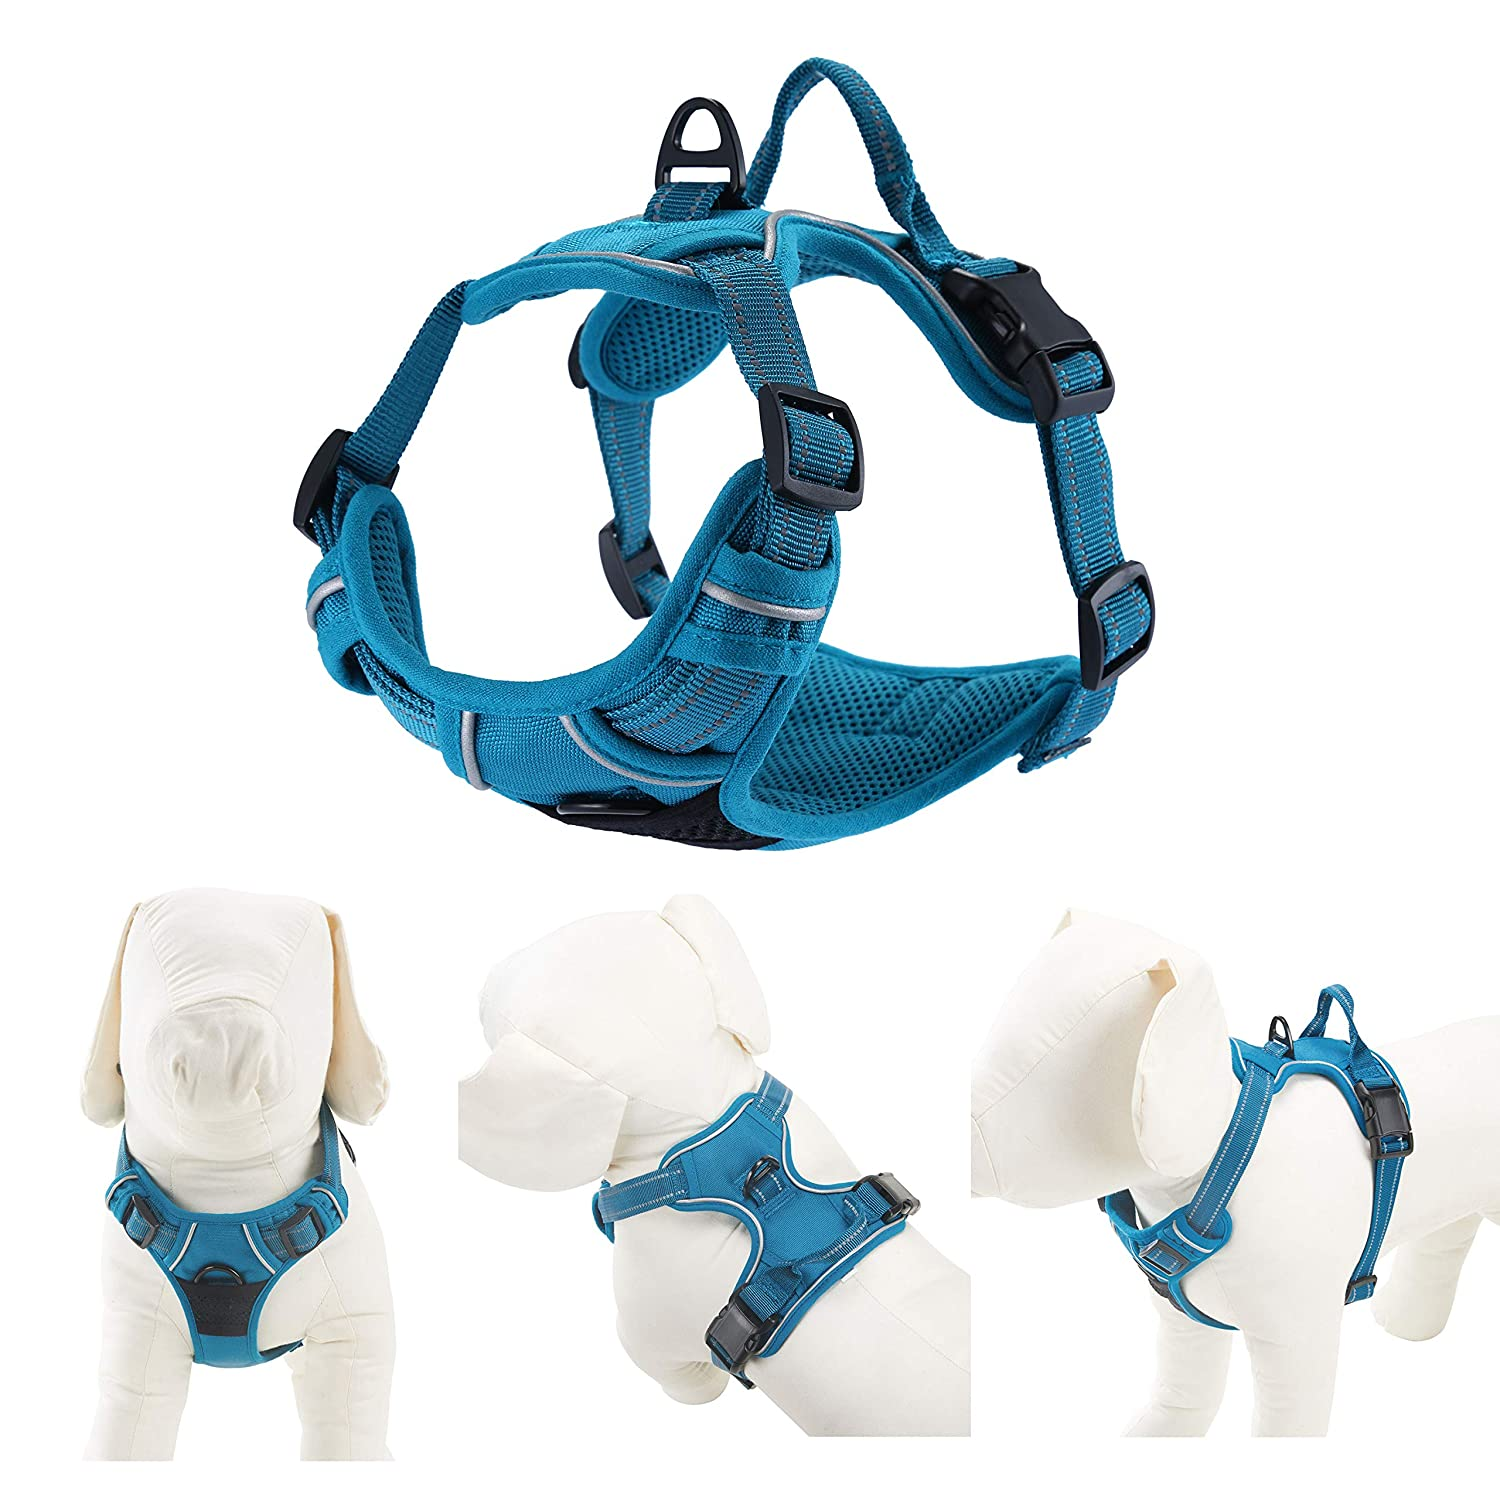 Louvra Dog Harness 3M Reflective No Pull Dog Harness with Handle Adjustable Heavy Duty Chest and Back D Rings Pet Vest Harness for Big Large Dog Running Walking Blue,L